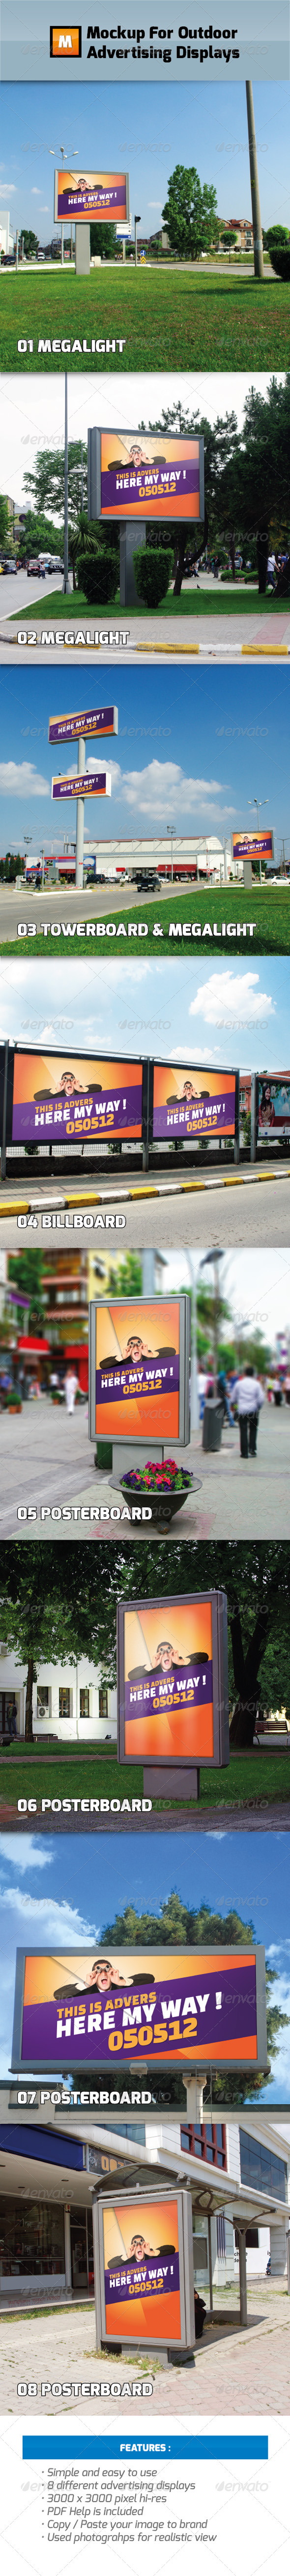 GraphicRiver Mockup For Outdoor Advertising Displays 2458879